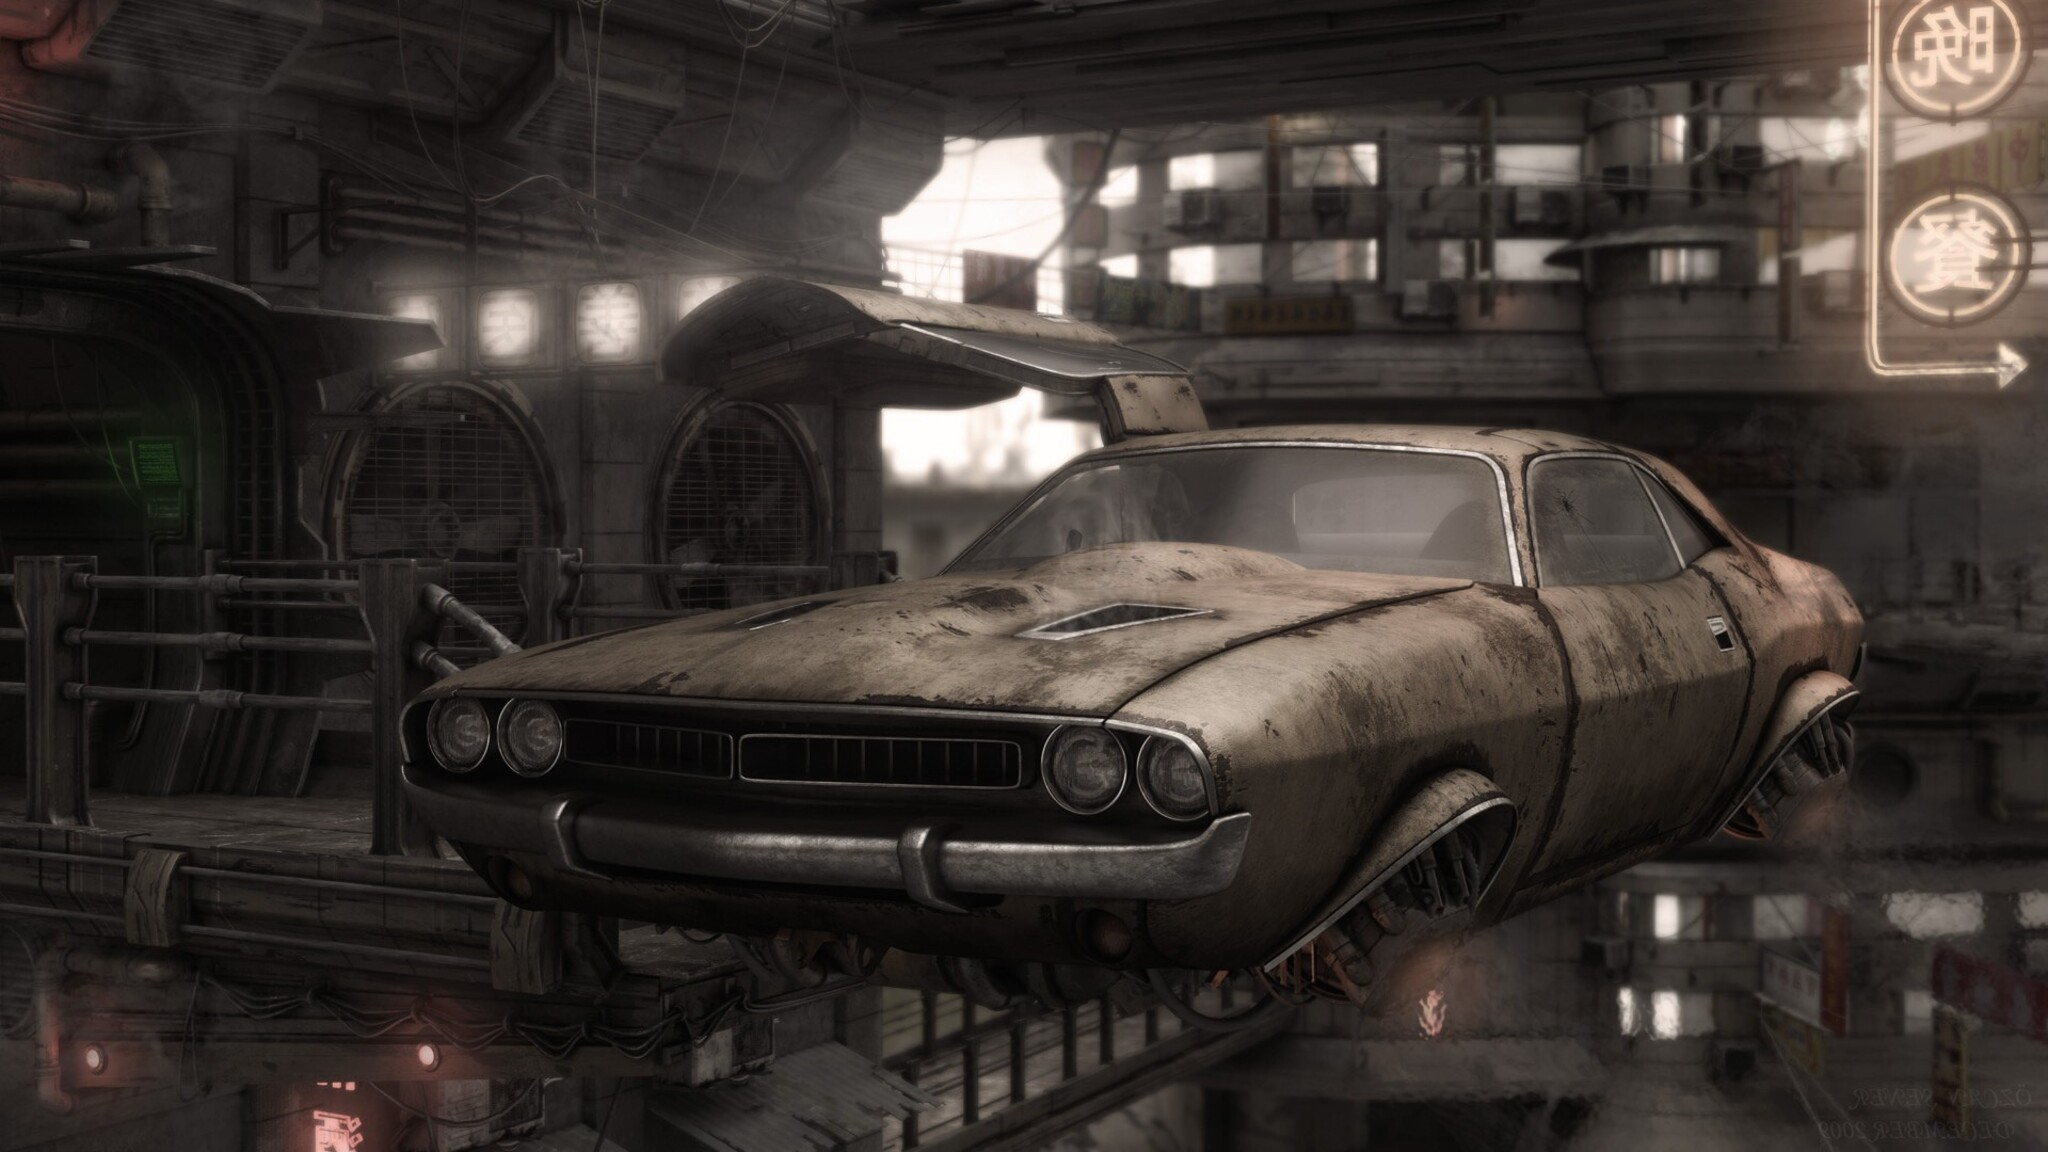 2048x1152 muscle car vintage 2048x1152 resolution hd 4k - Muscle cars wallpaper hd pack ...